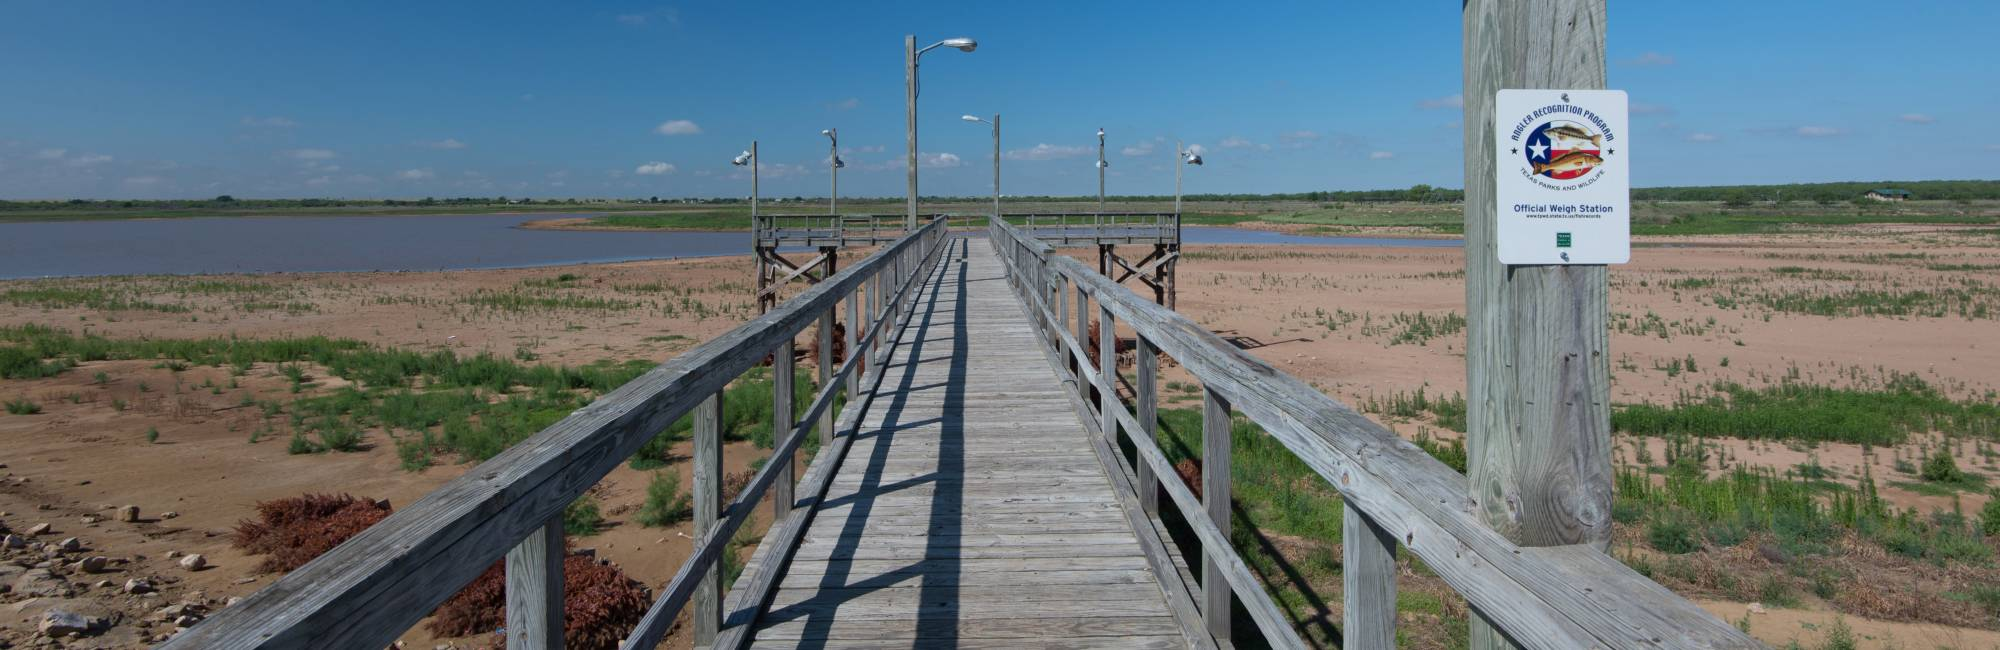 photo of pier surrounded by dry lakebed with lake in the background